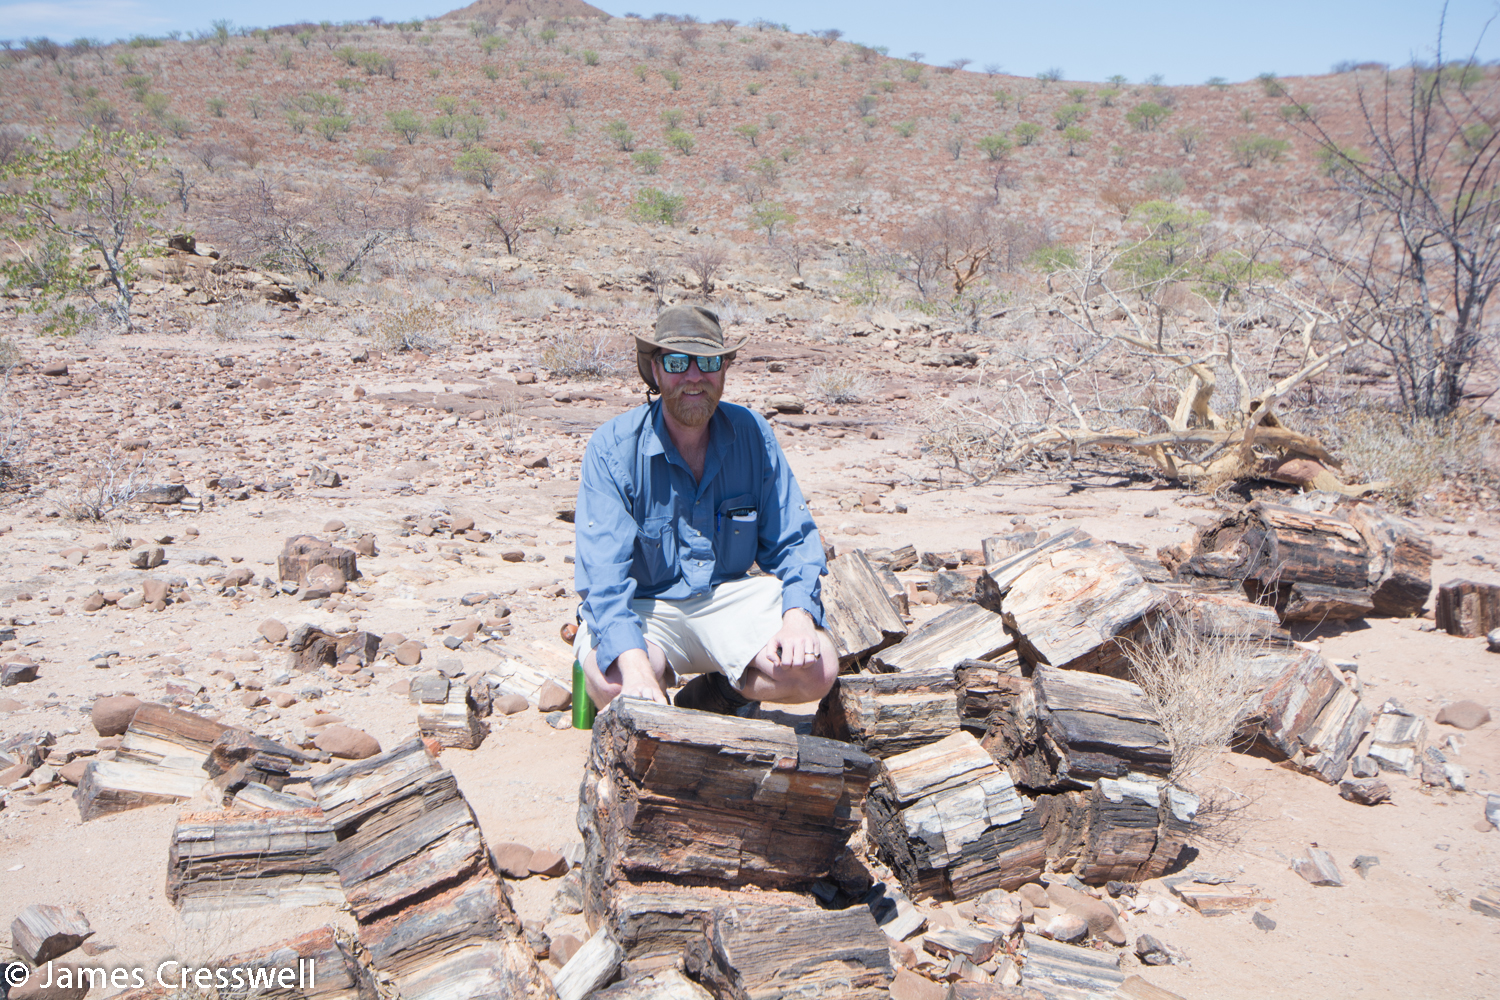 James Cresswell with 270ma Permian petrified trees which grew in cold humid conditions and were up to 30m high. The trees are contained within fluvial sediments of the Karoo supergroup.